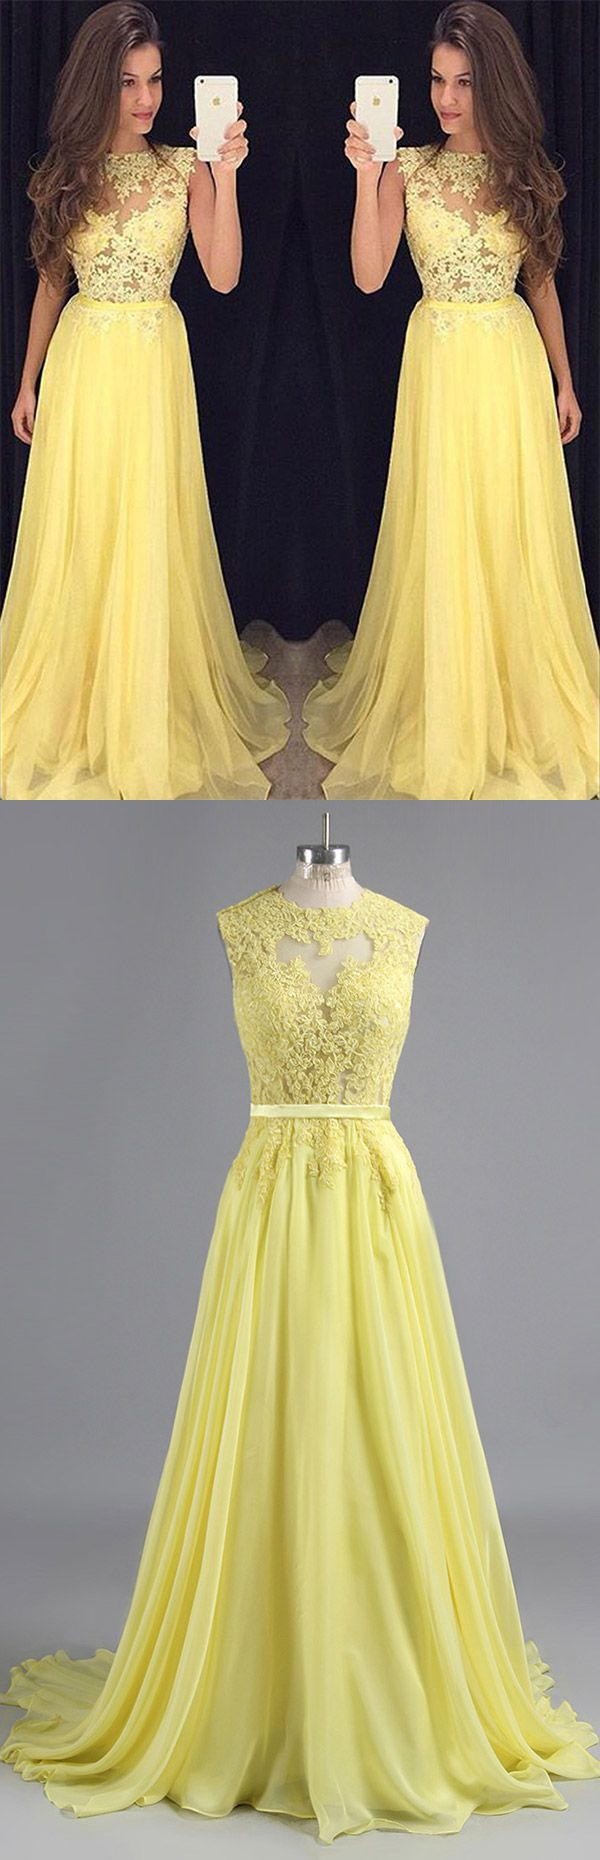 Long Prom Dresses Yellow, Daffodil Party Dresses 2018 Lace, Scoop Neck Formal Evening Dresses Chiffon Boutique